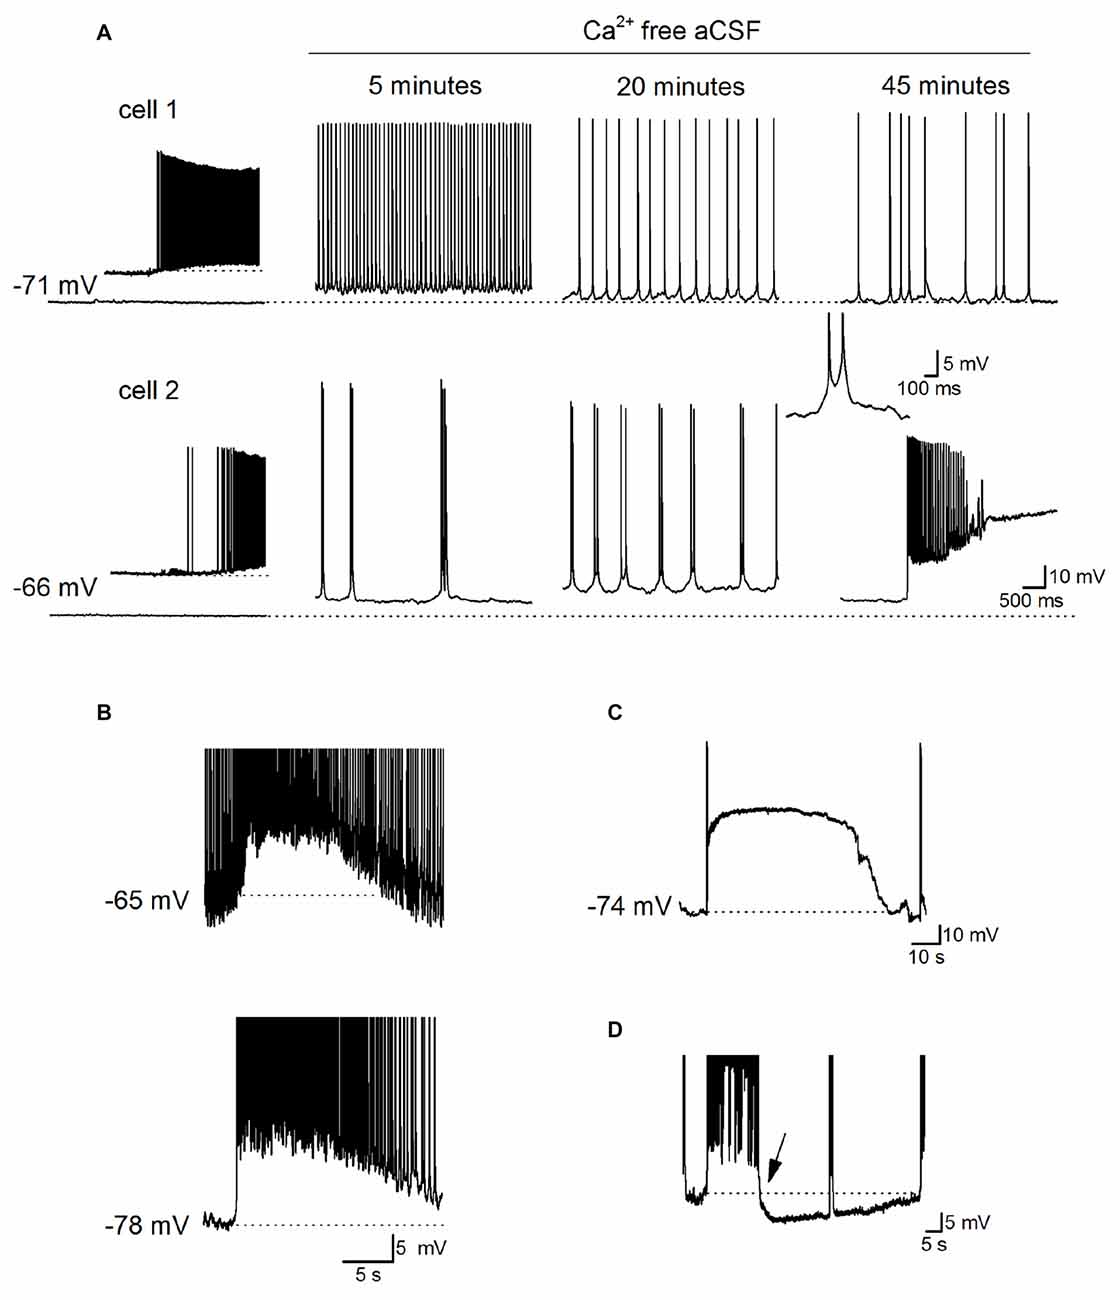 Frontiers Reducing Extracellular Ca2 Induces Adenosine Release Ac Circuit With Dependent Voltage And Current Sources Physics Forums